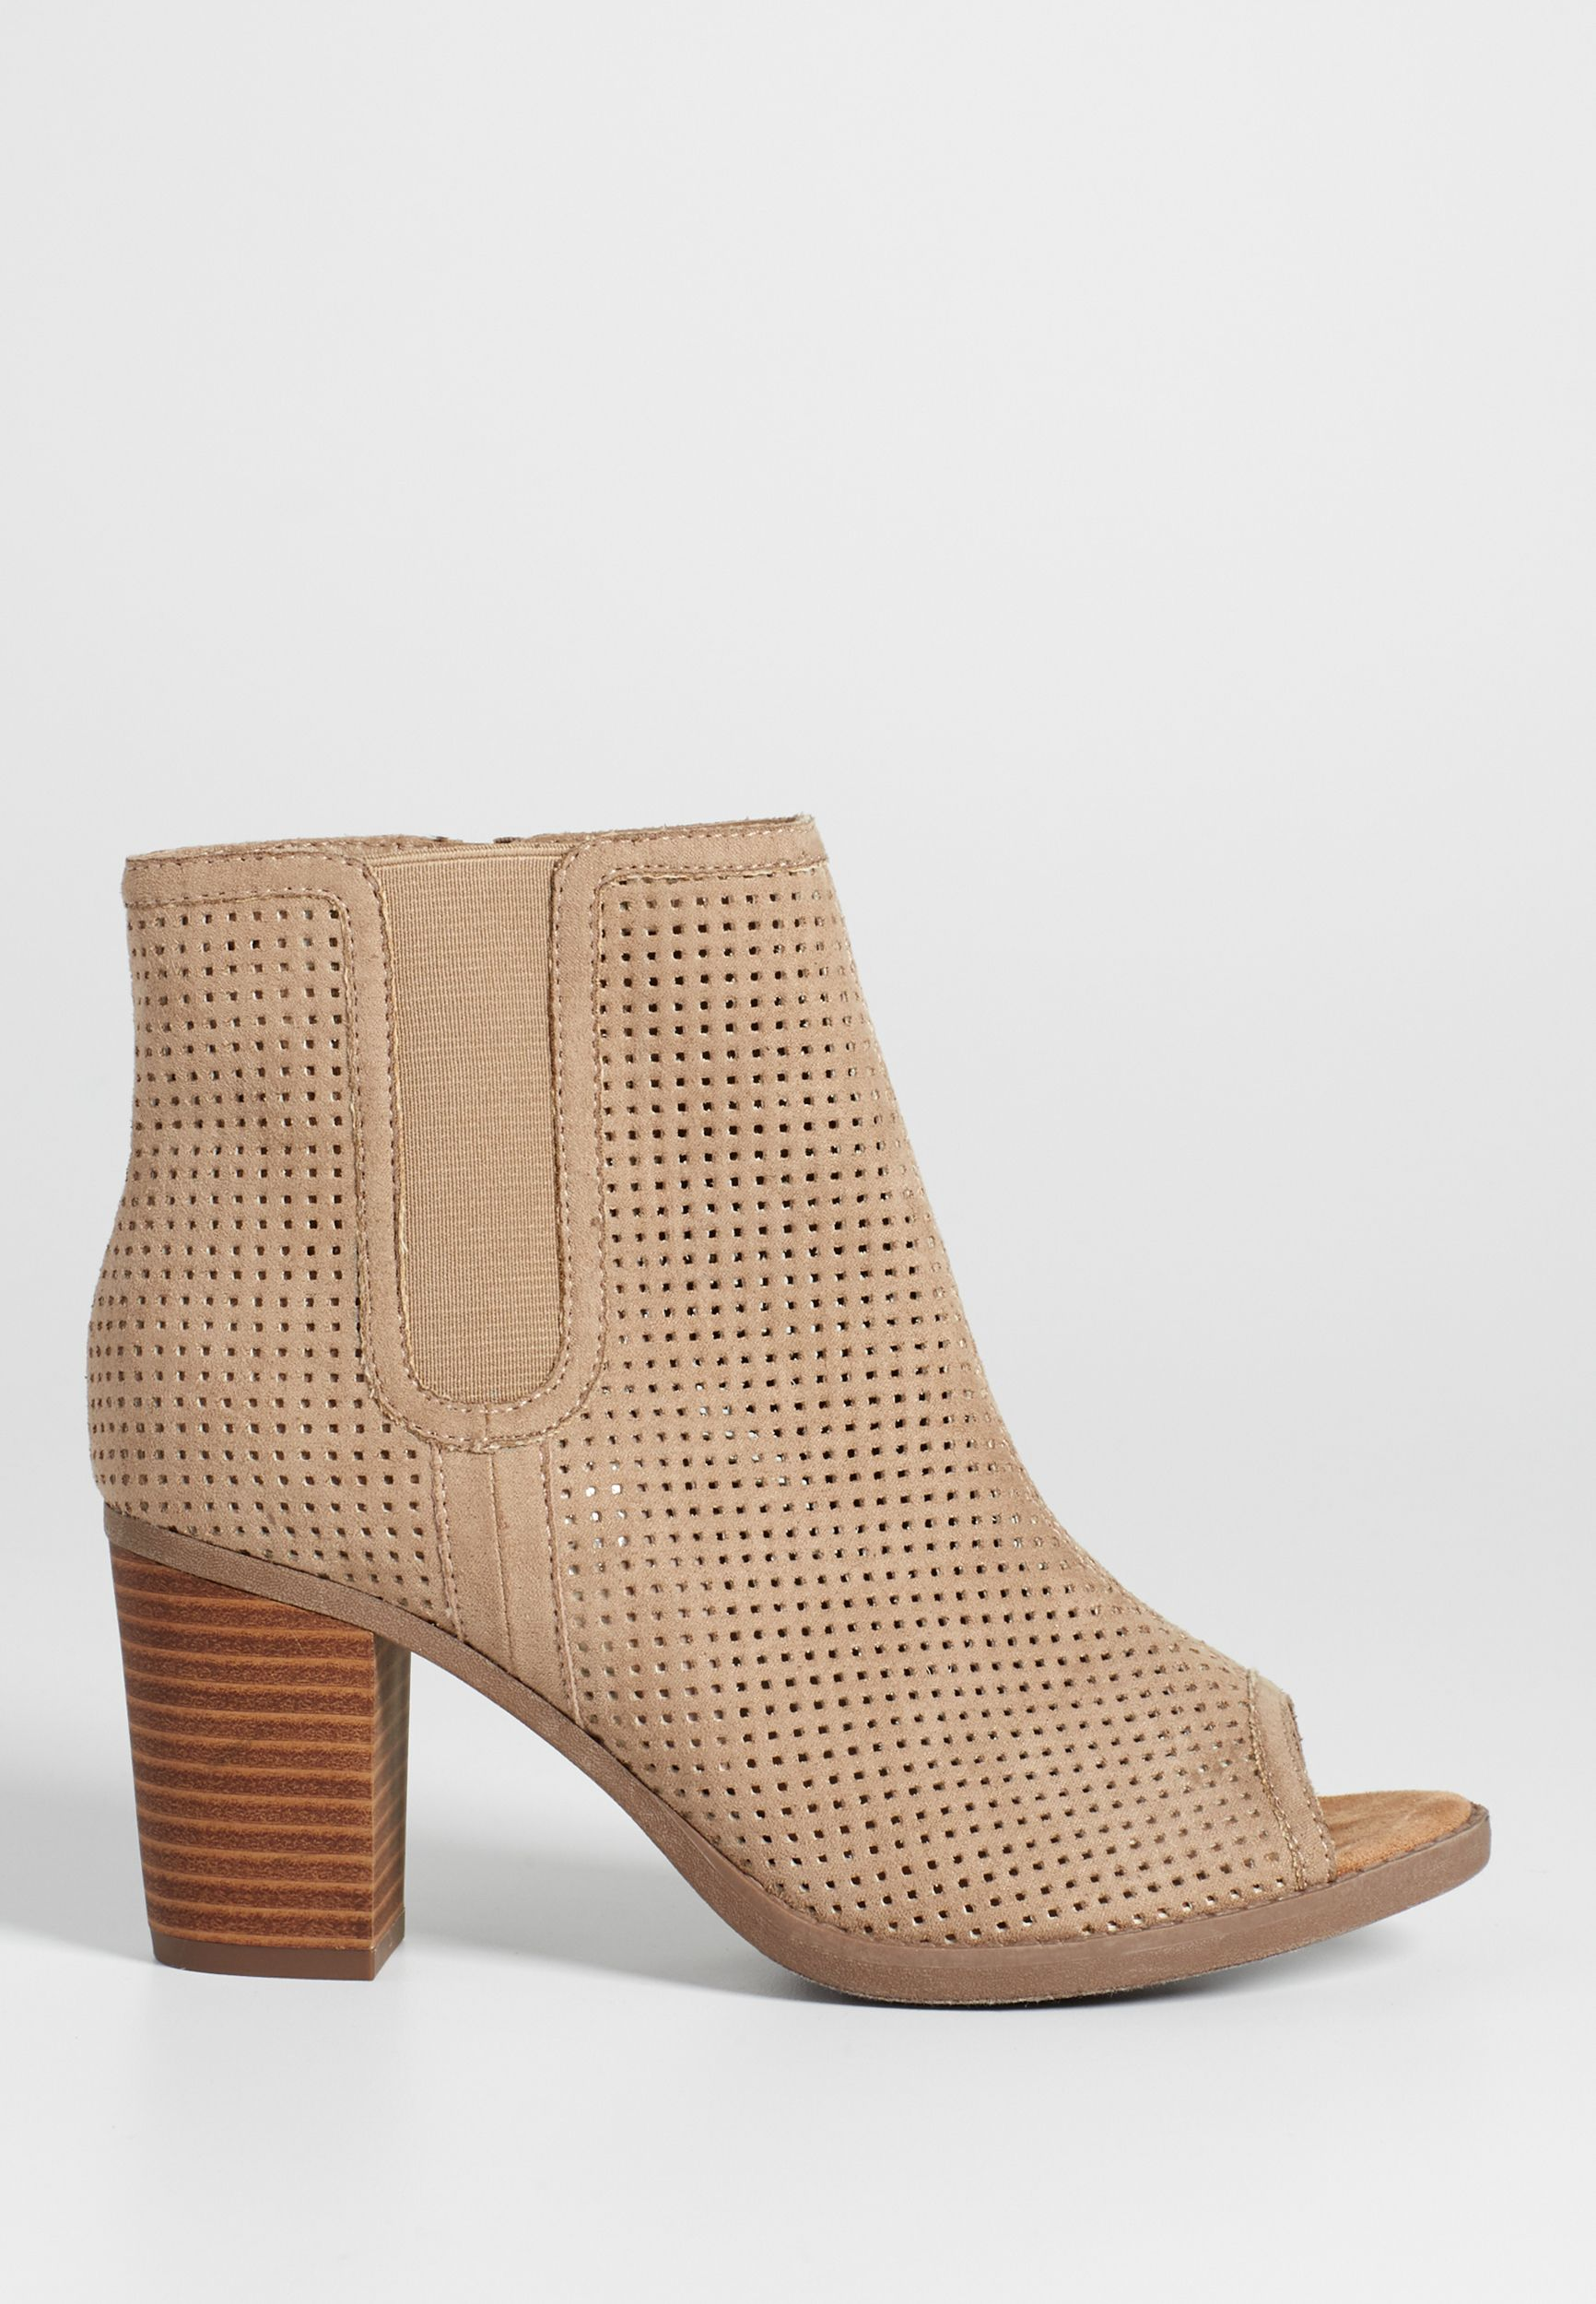 Perforated Faux Suede Booties PDiKKaZVi